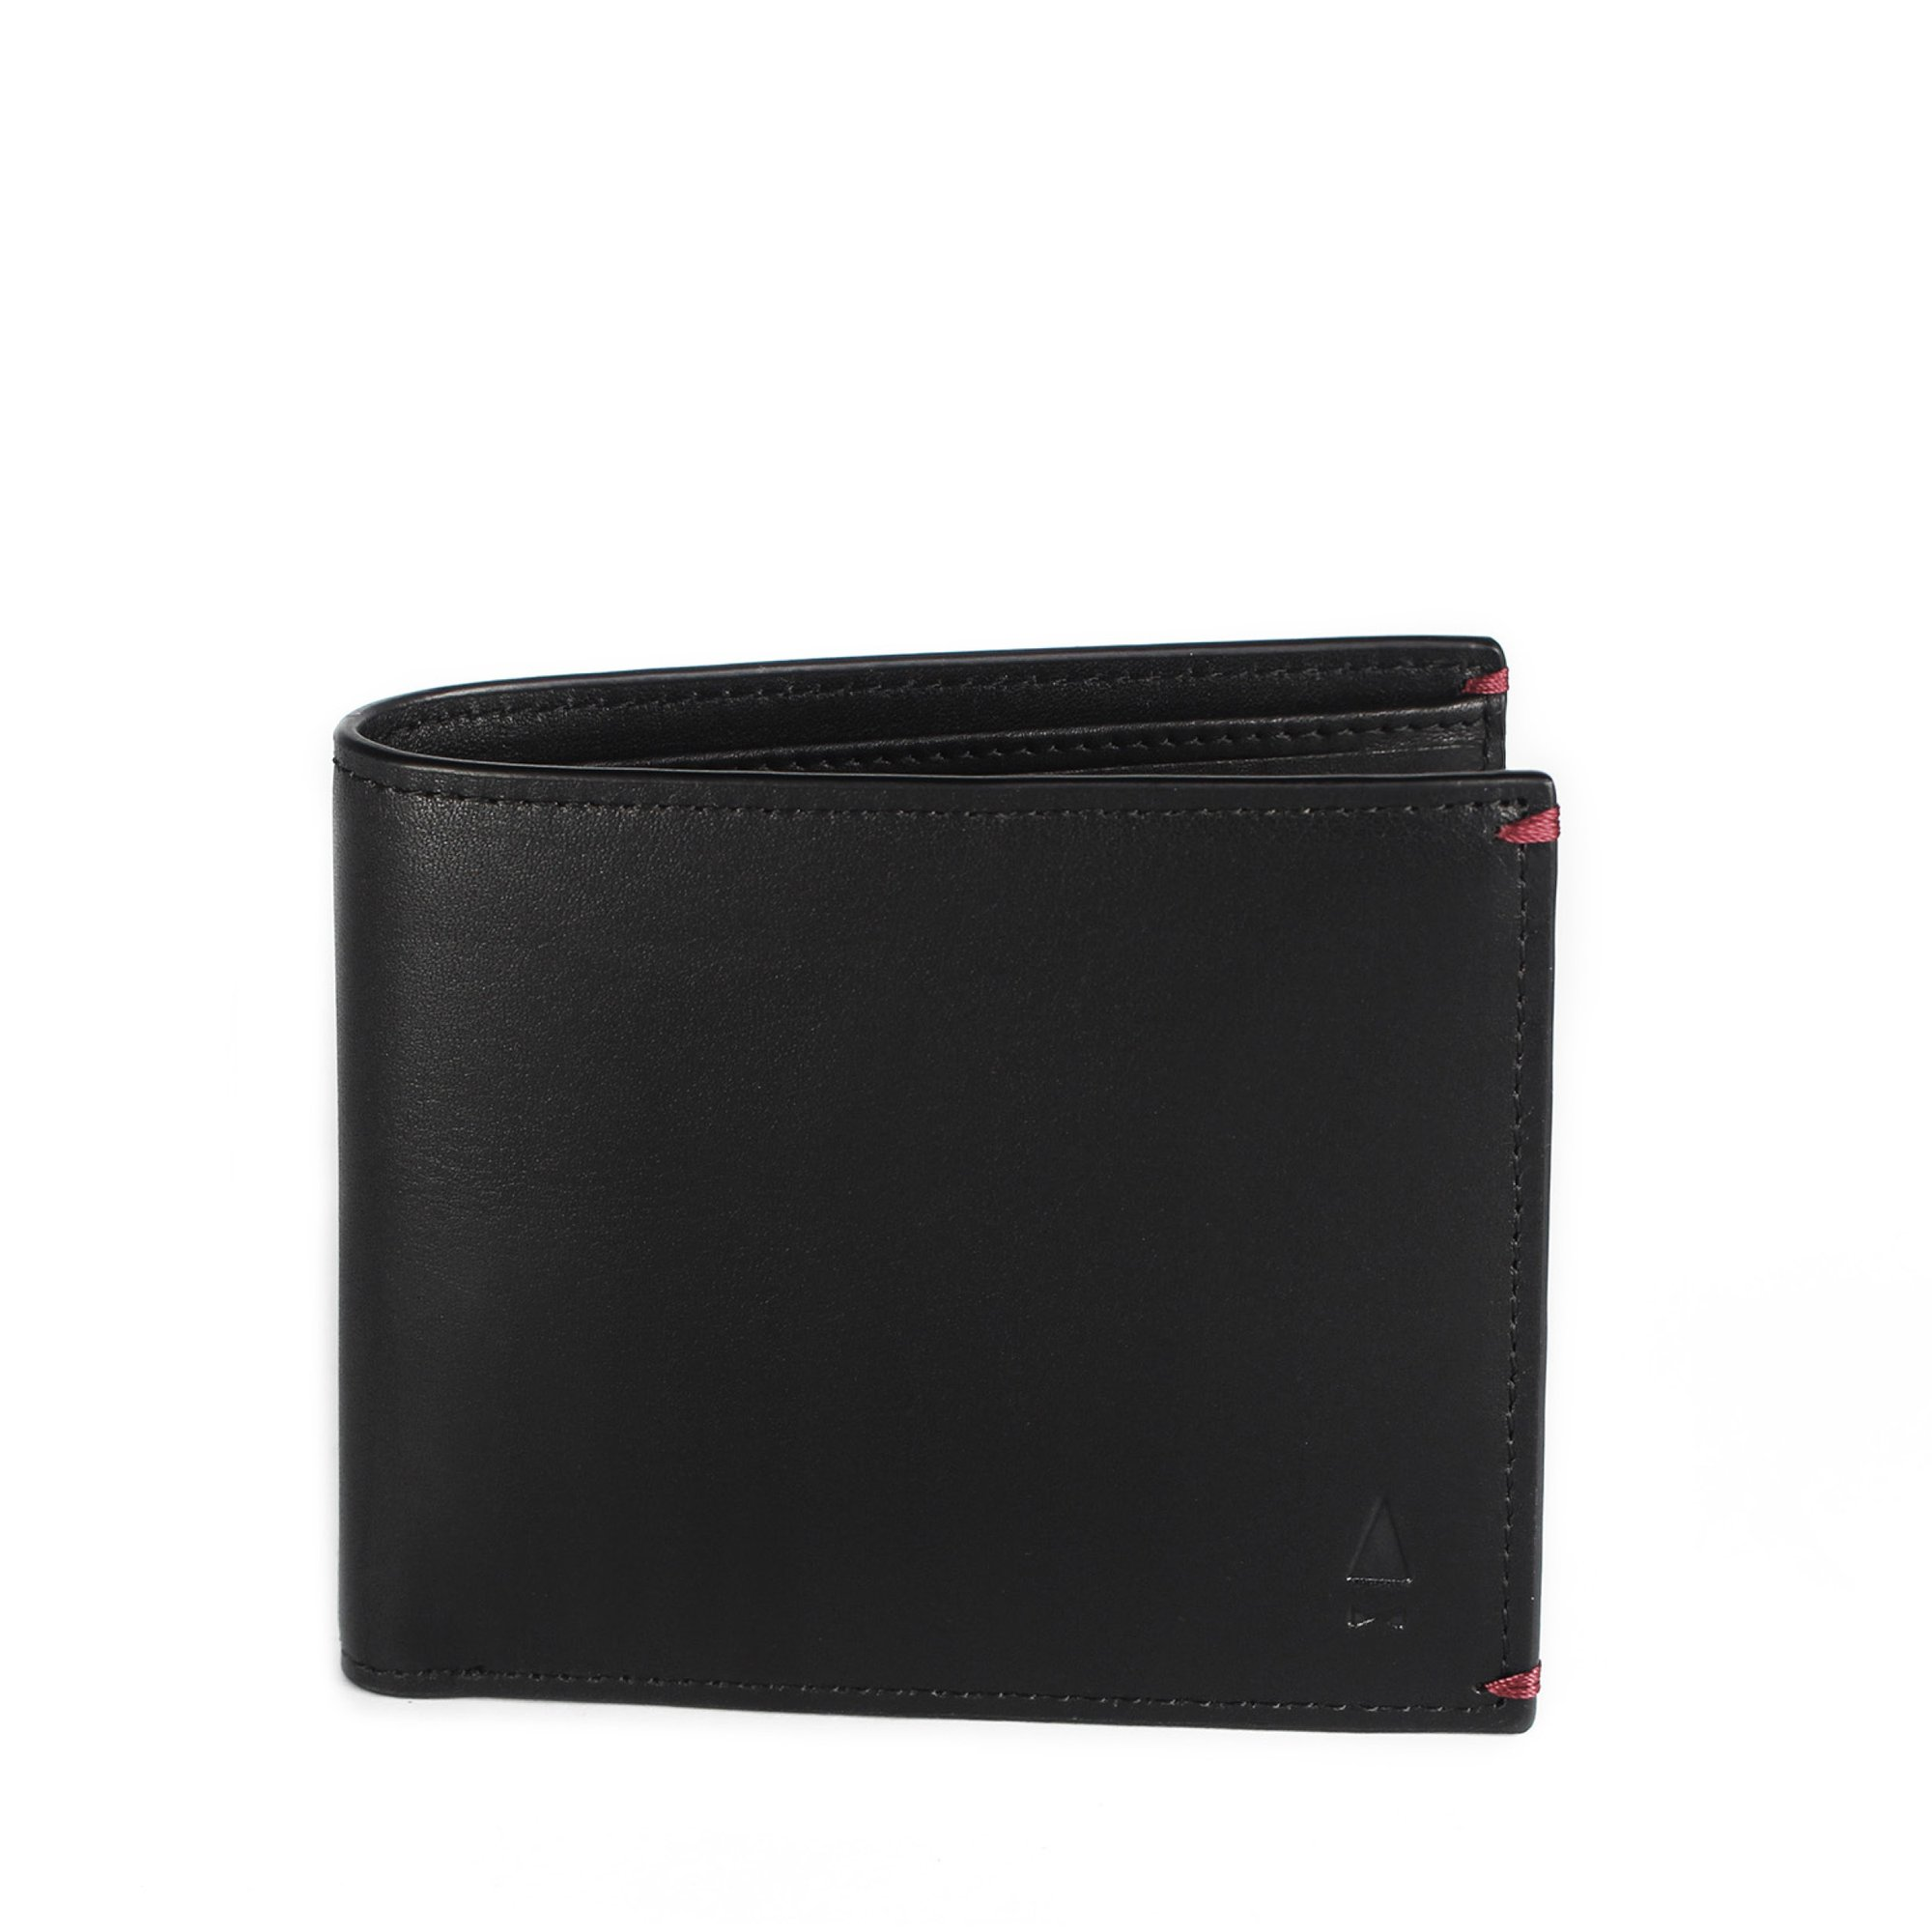 Gnome & Bow Linden Billfold in Onyx Black, $185